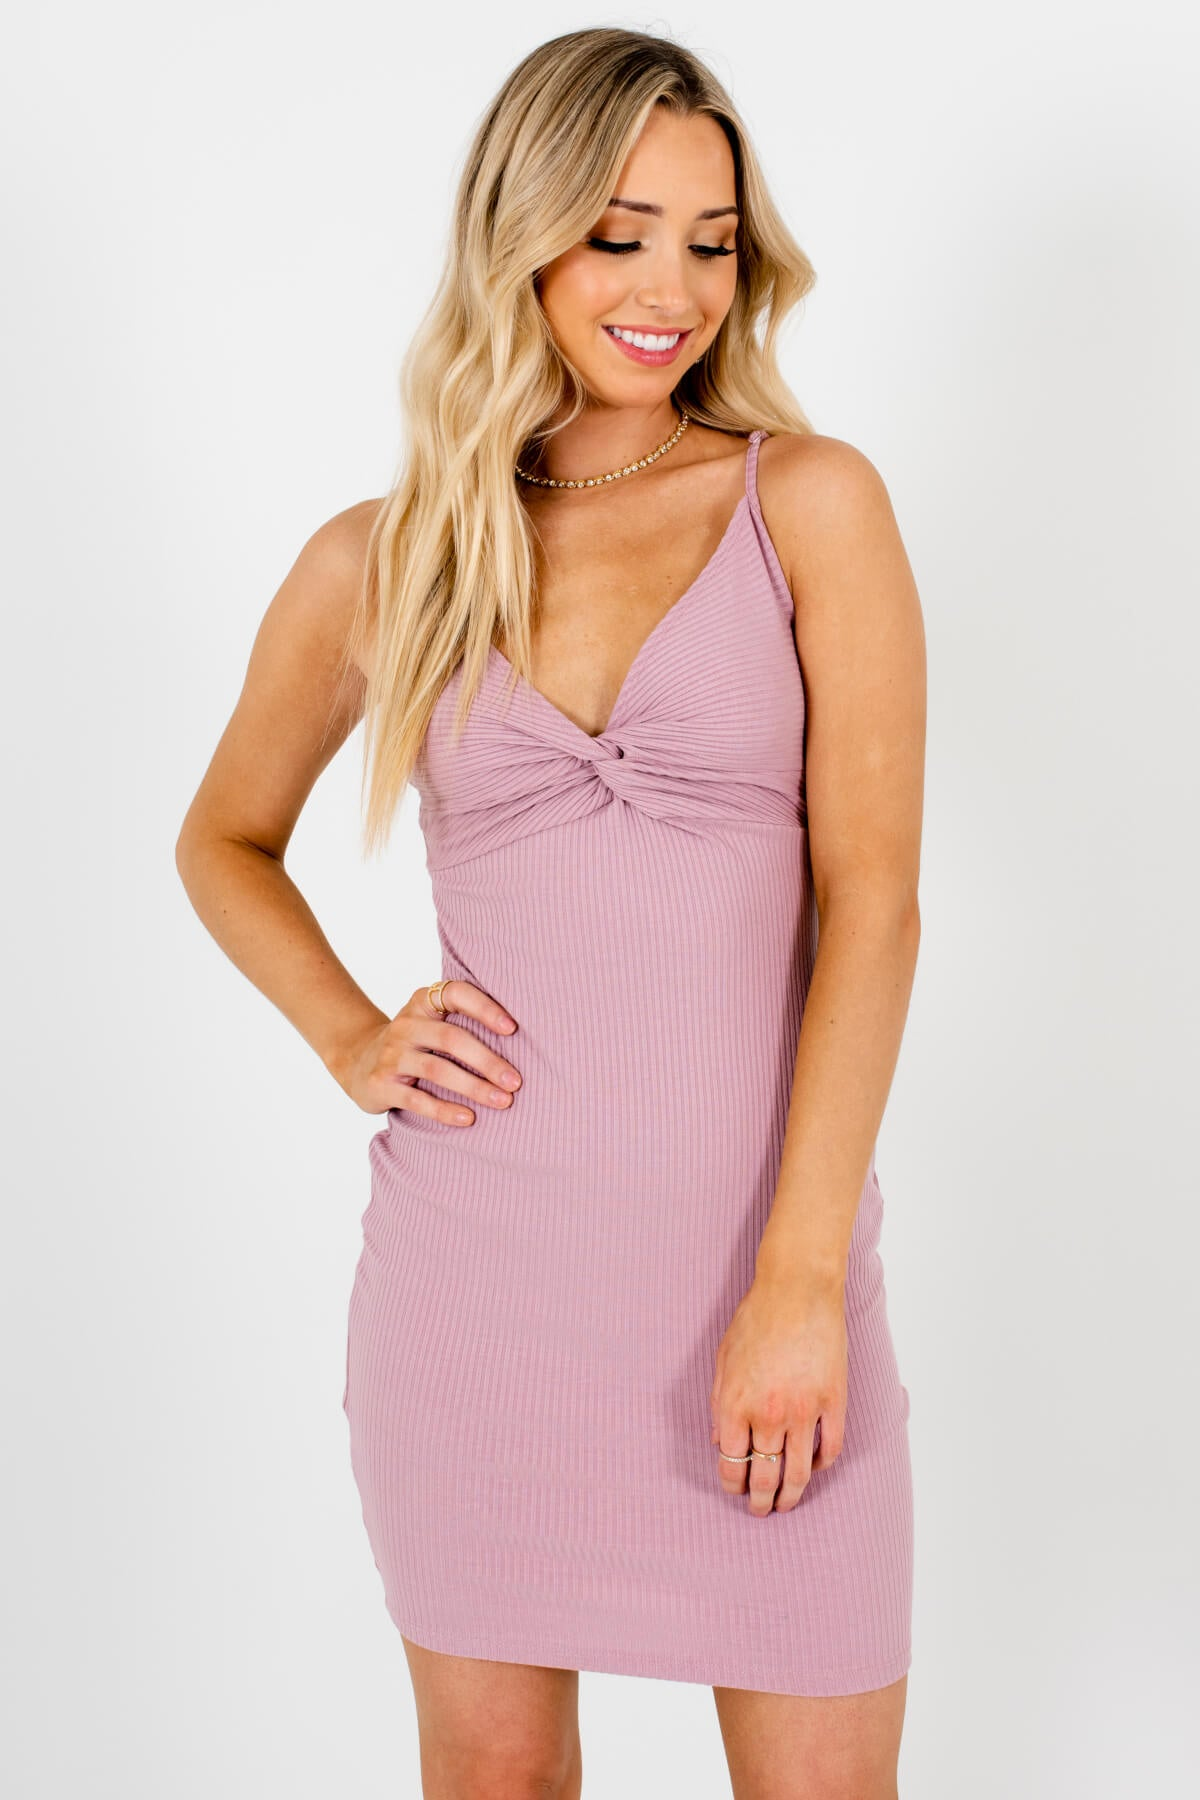 Purple-Pink Hugging Fit Body con Style Boutique Mini Dresses for Women